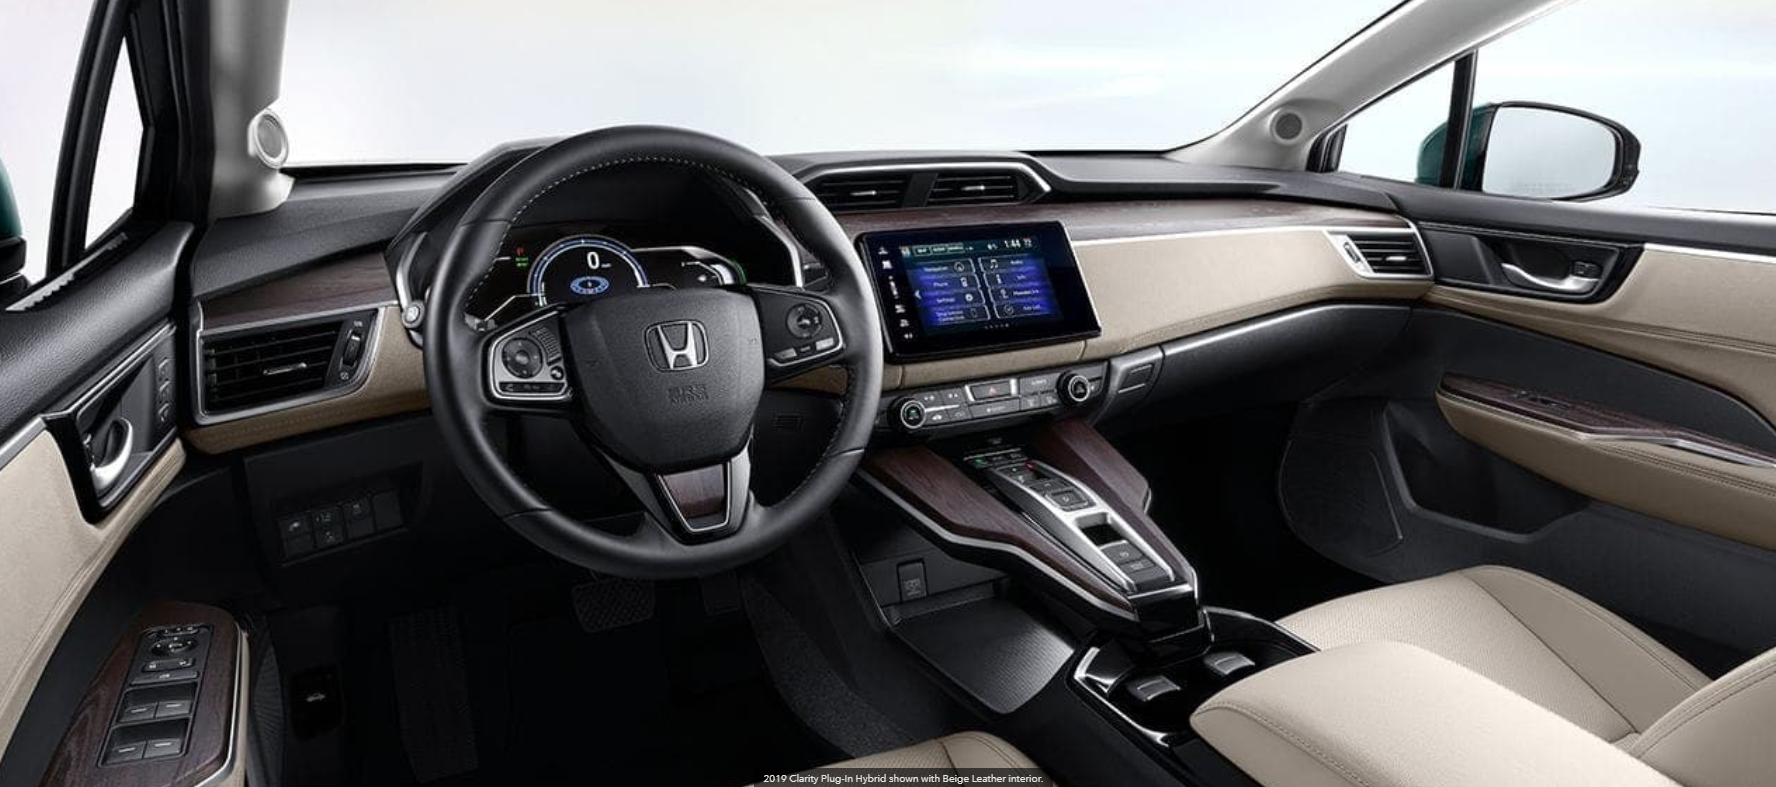 Castle Honda has a large inventory of used vehicles near Addison, IL